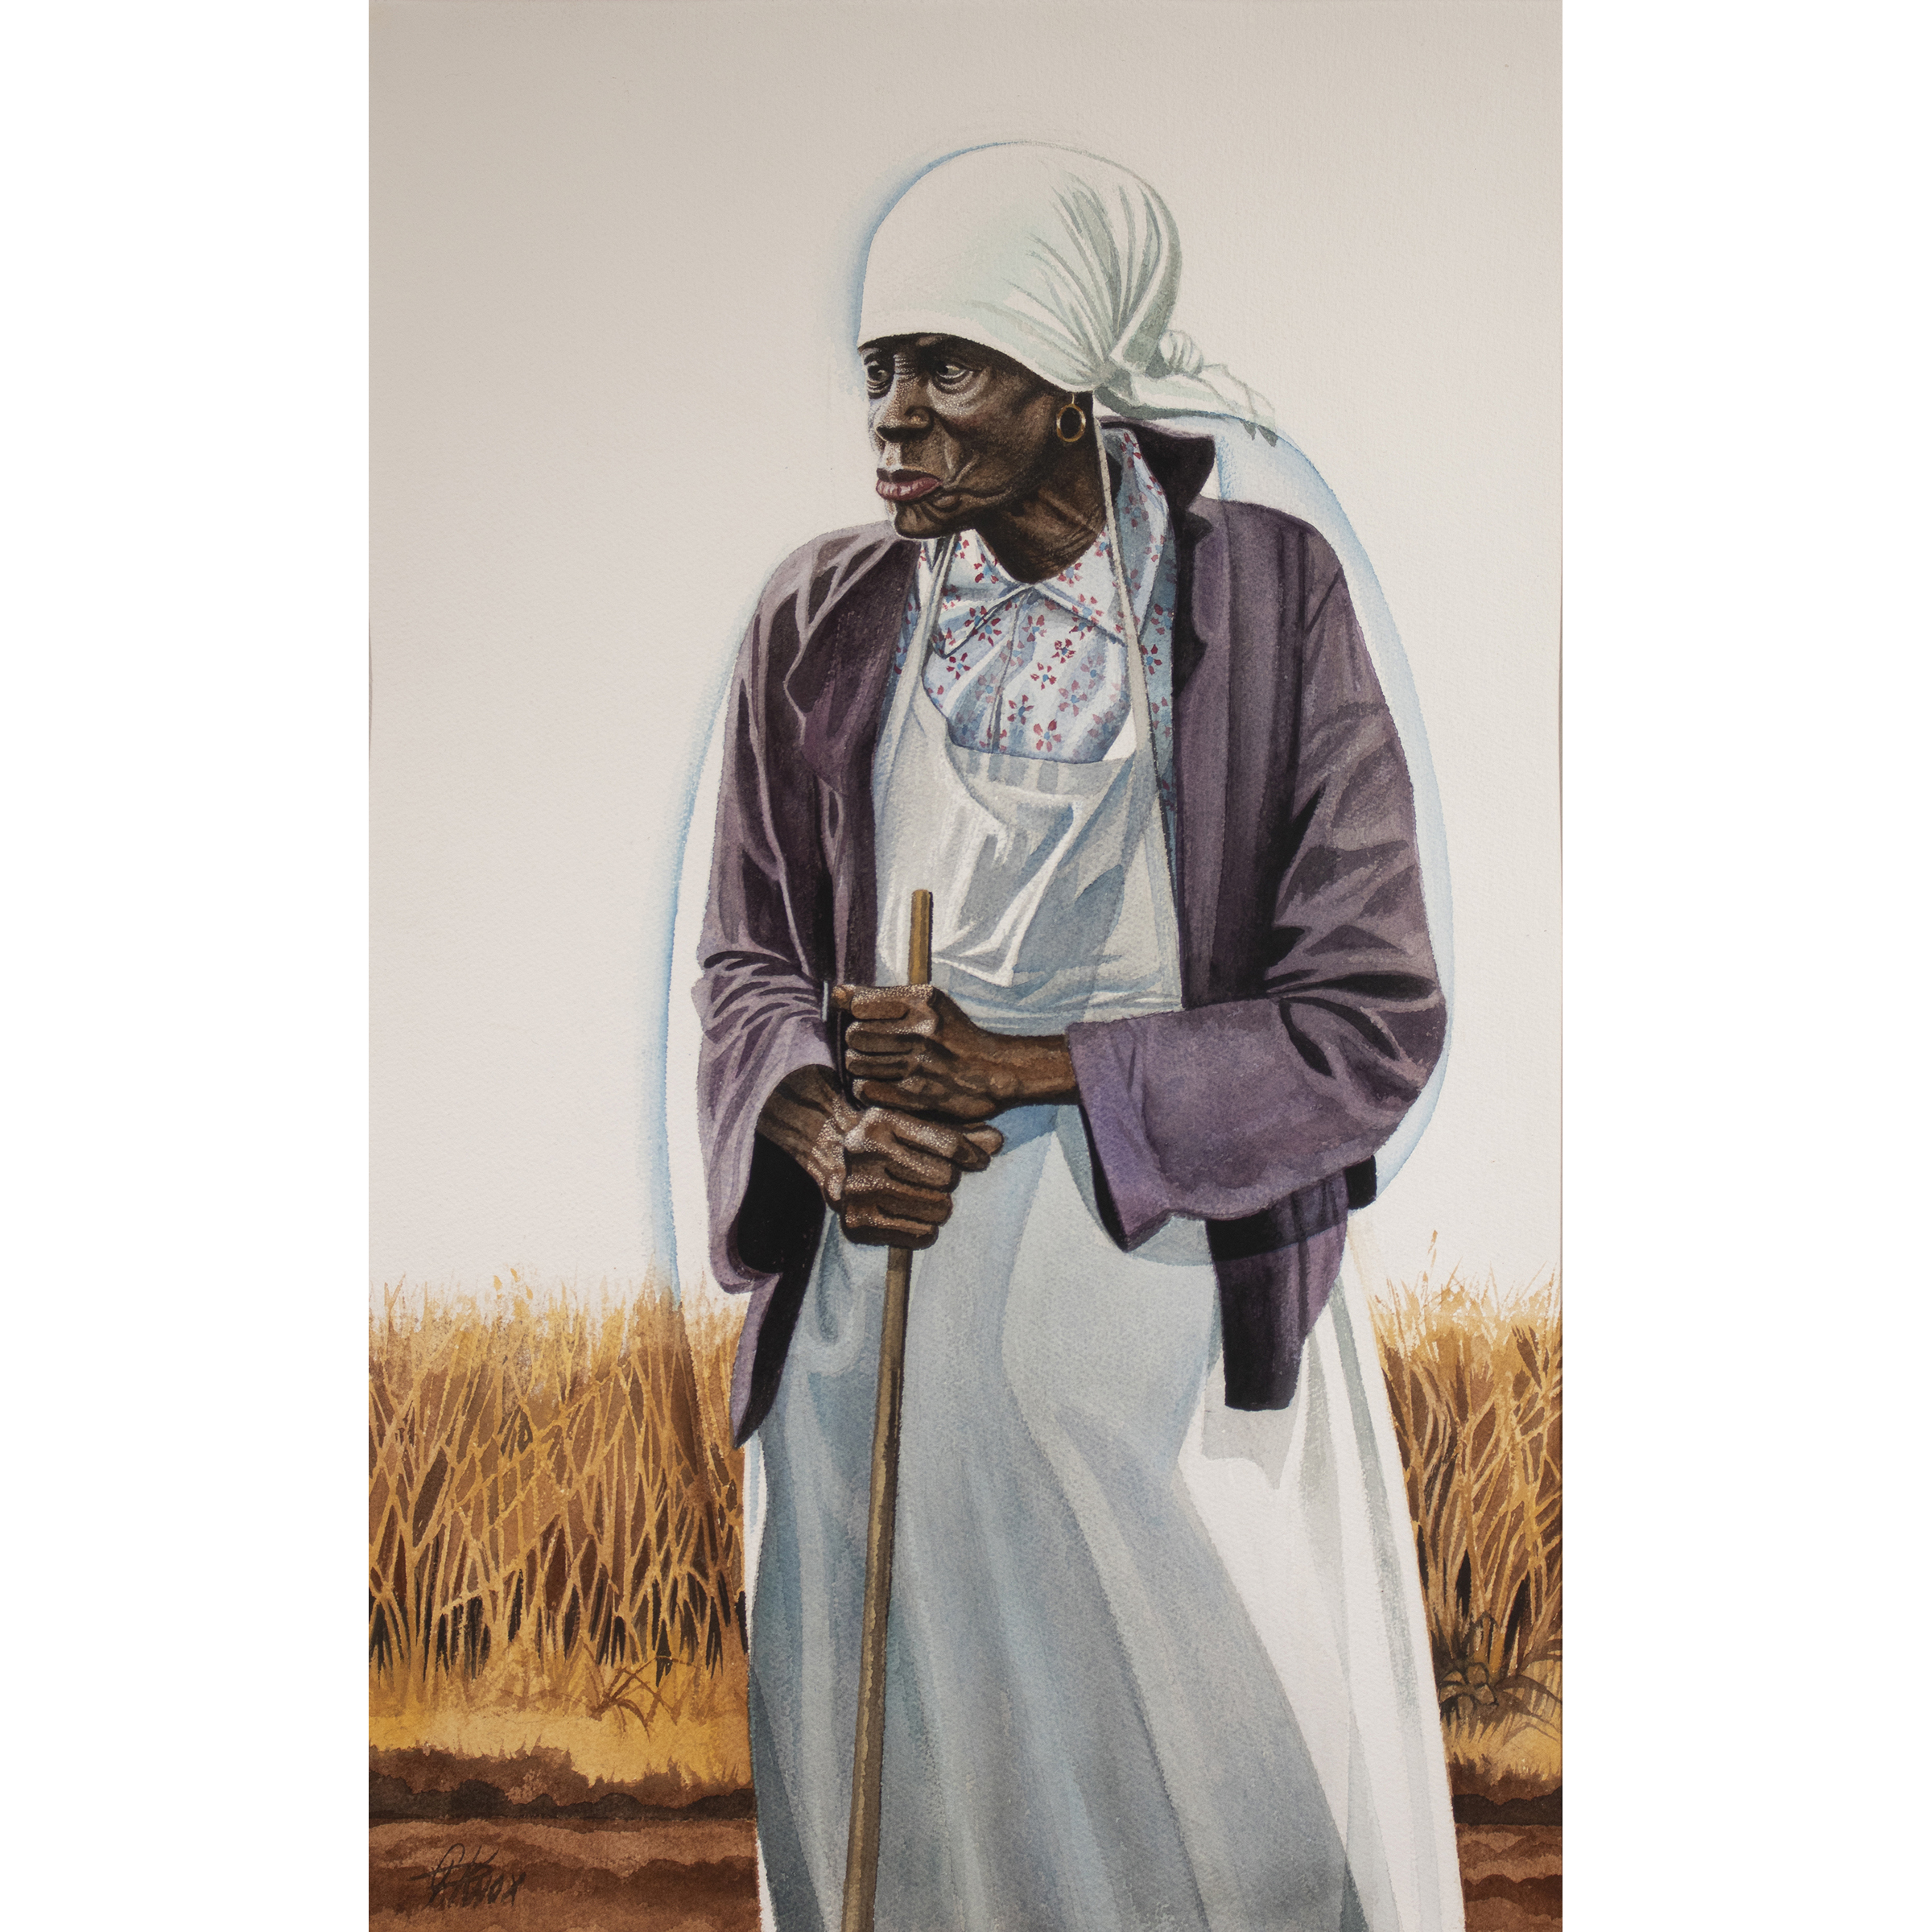 An Elderly Woman With An Apron